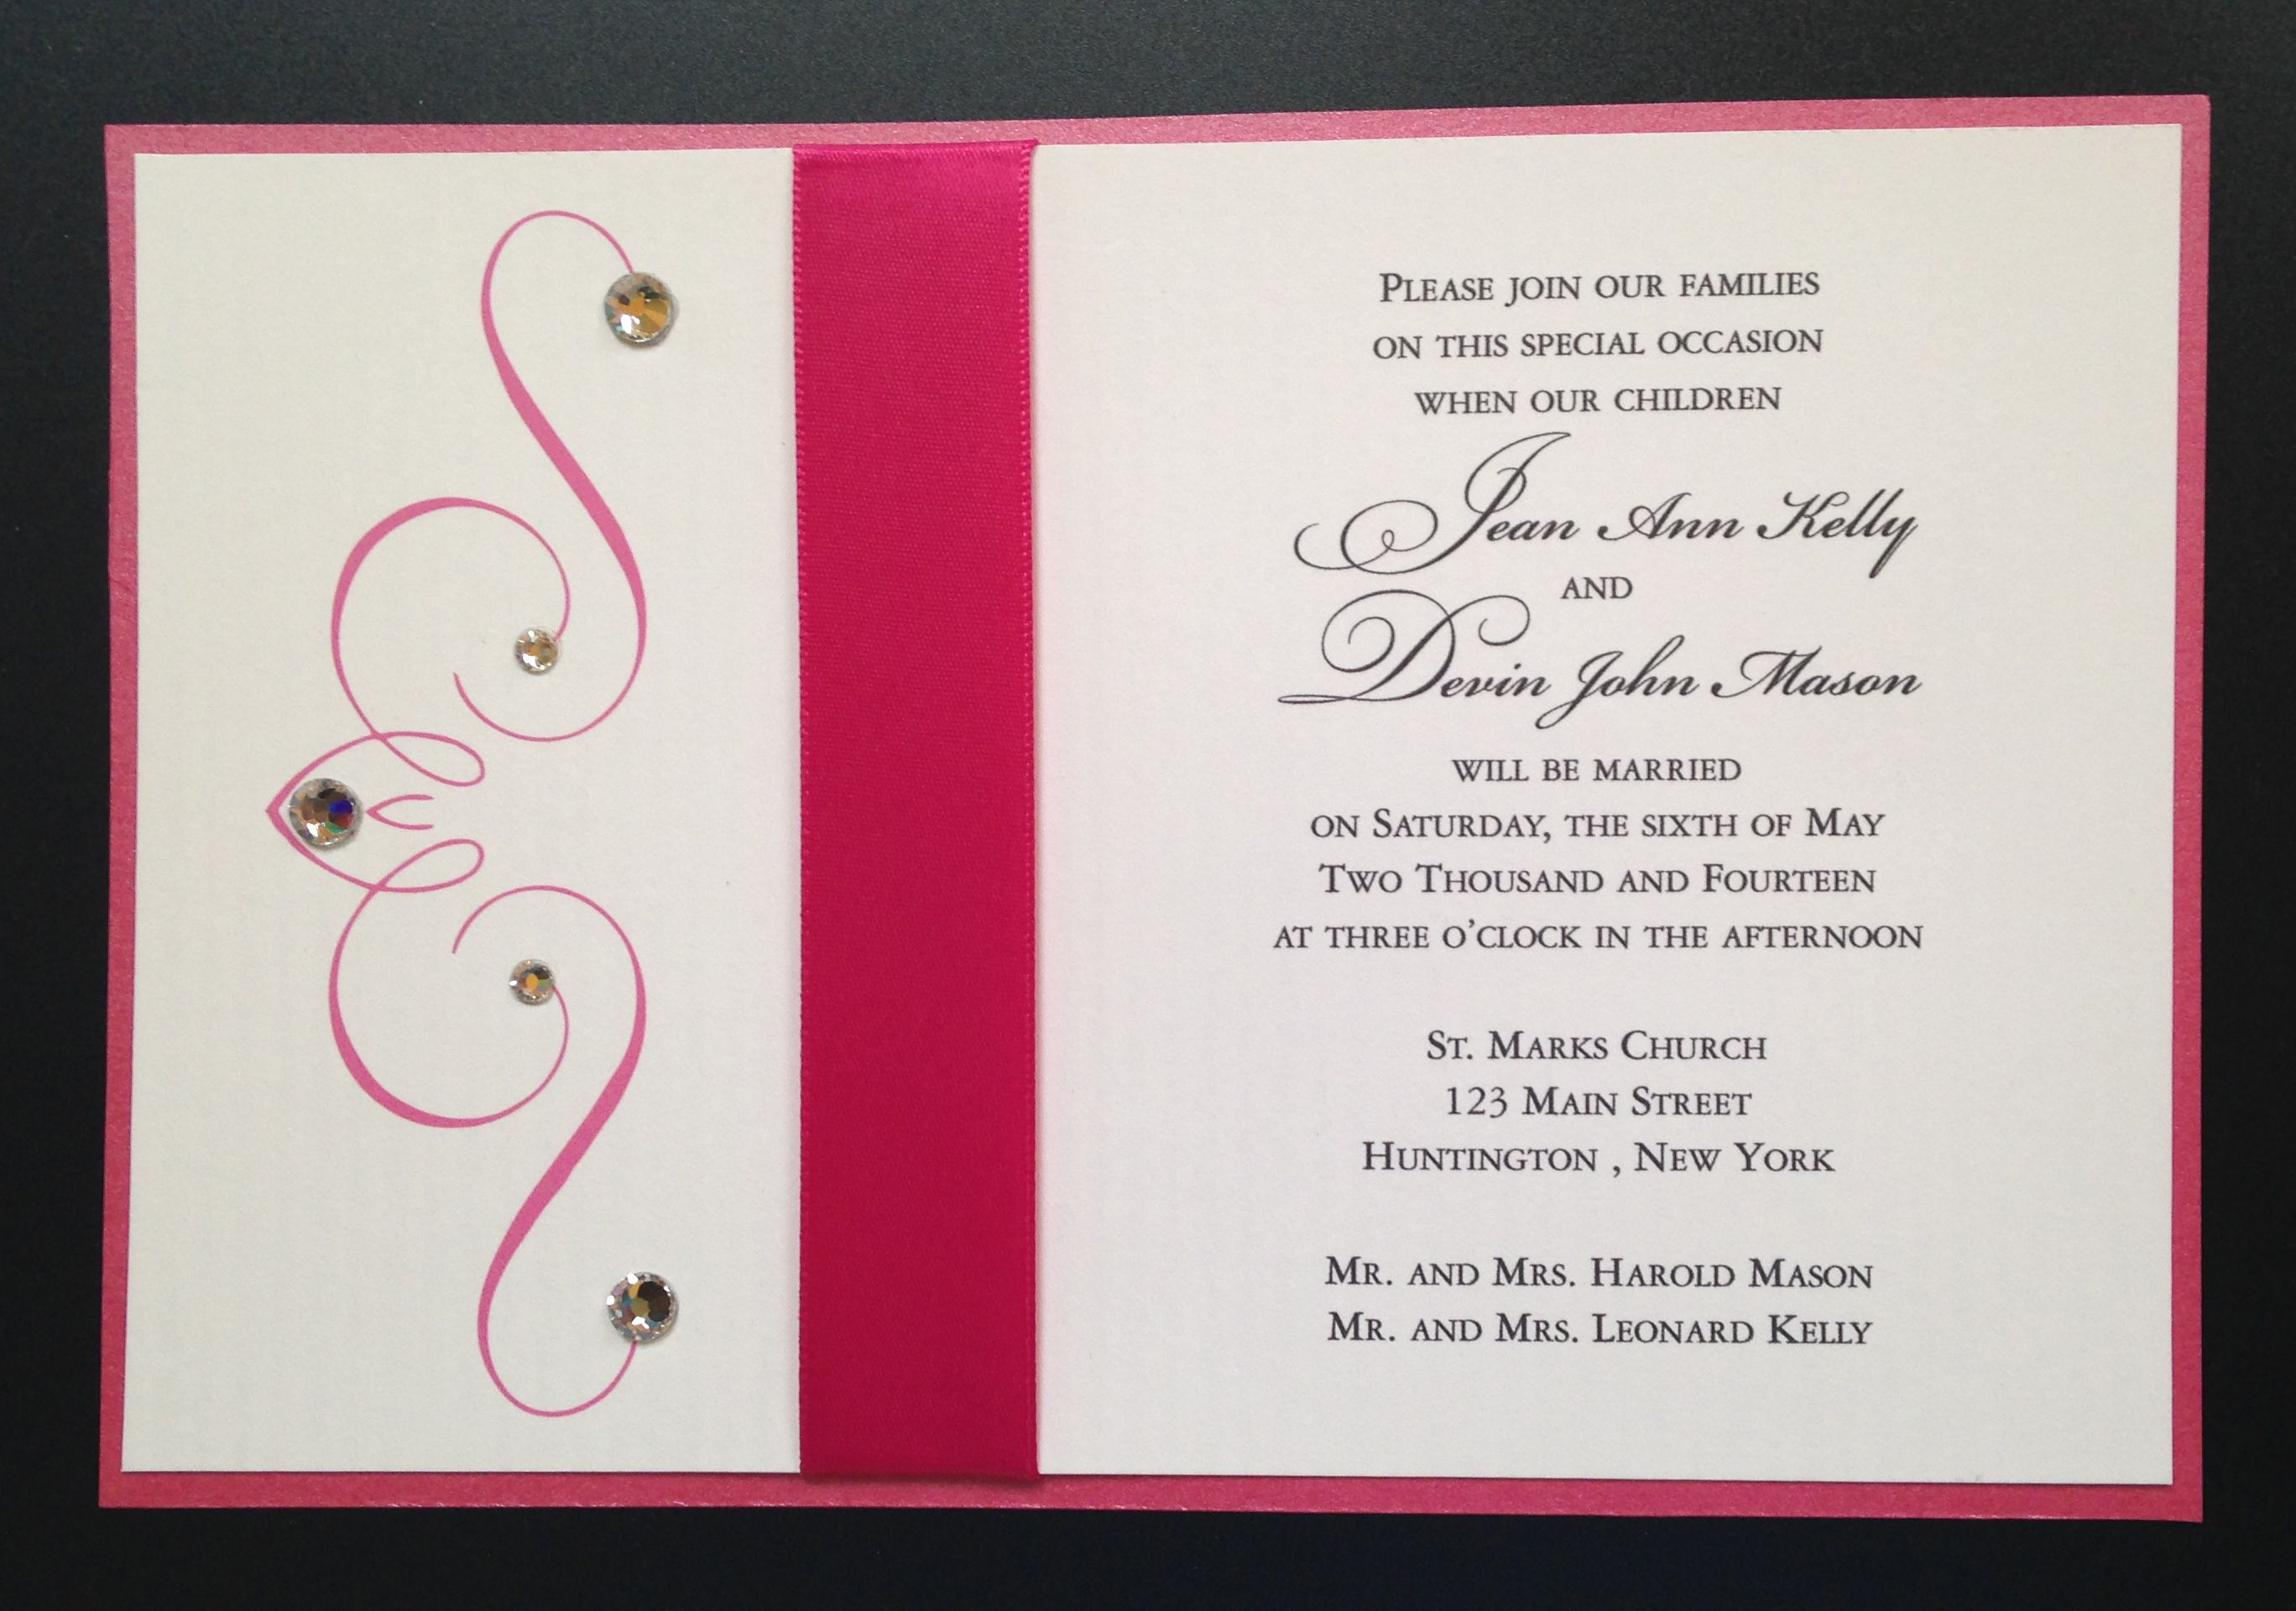 WeddingInvitation | More #Wedding #Invitations | Pinterest